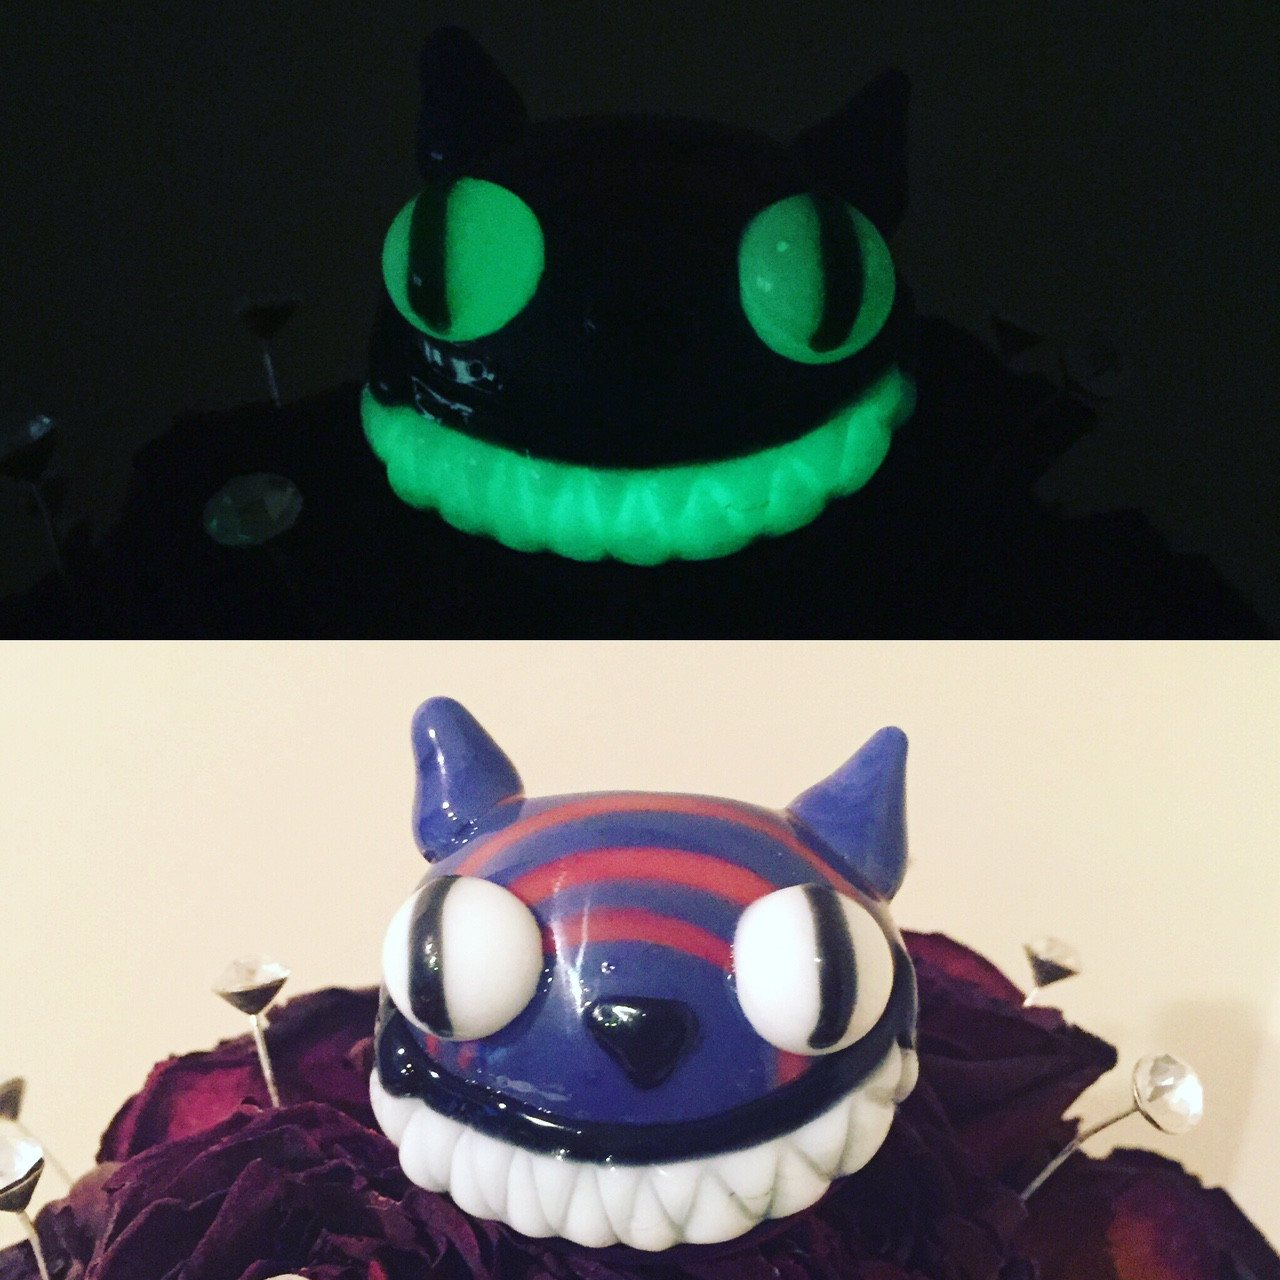 Chameleon Glass - Cheshire Cat Glow in the Dark Pipe